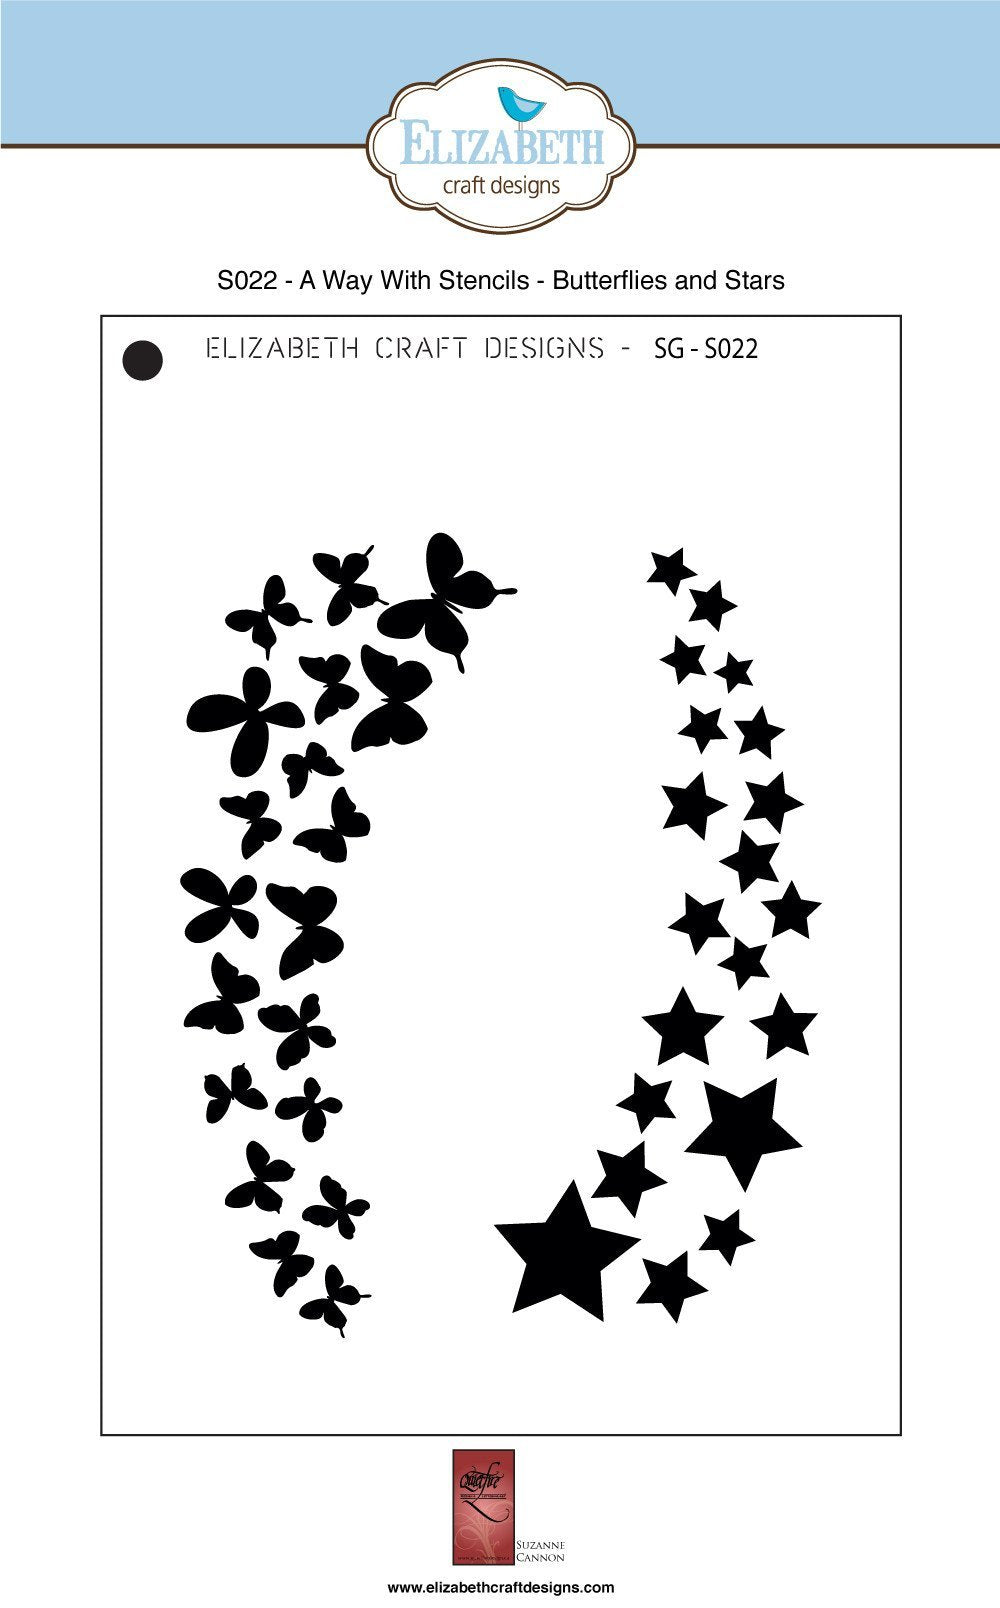 A Way With Stencils - Butterflies and Stars - Stencil - ElizabethCraftDesigns.com